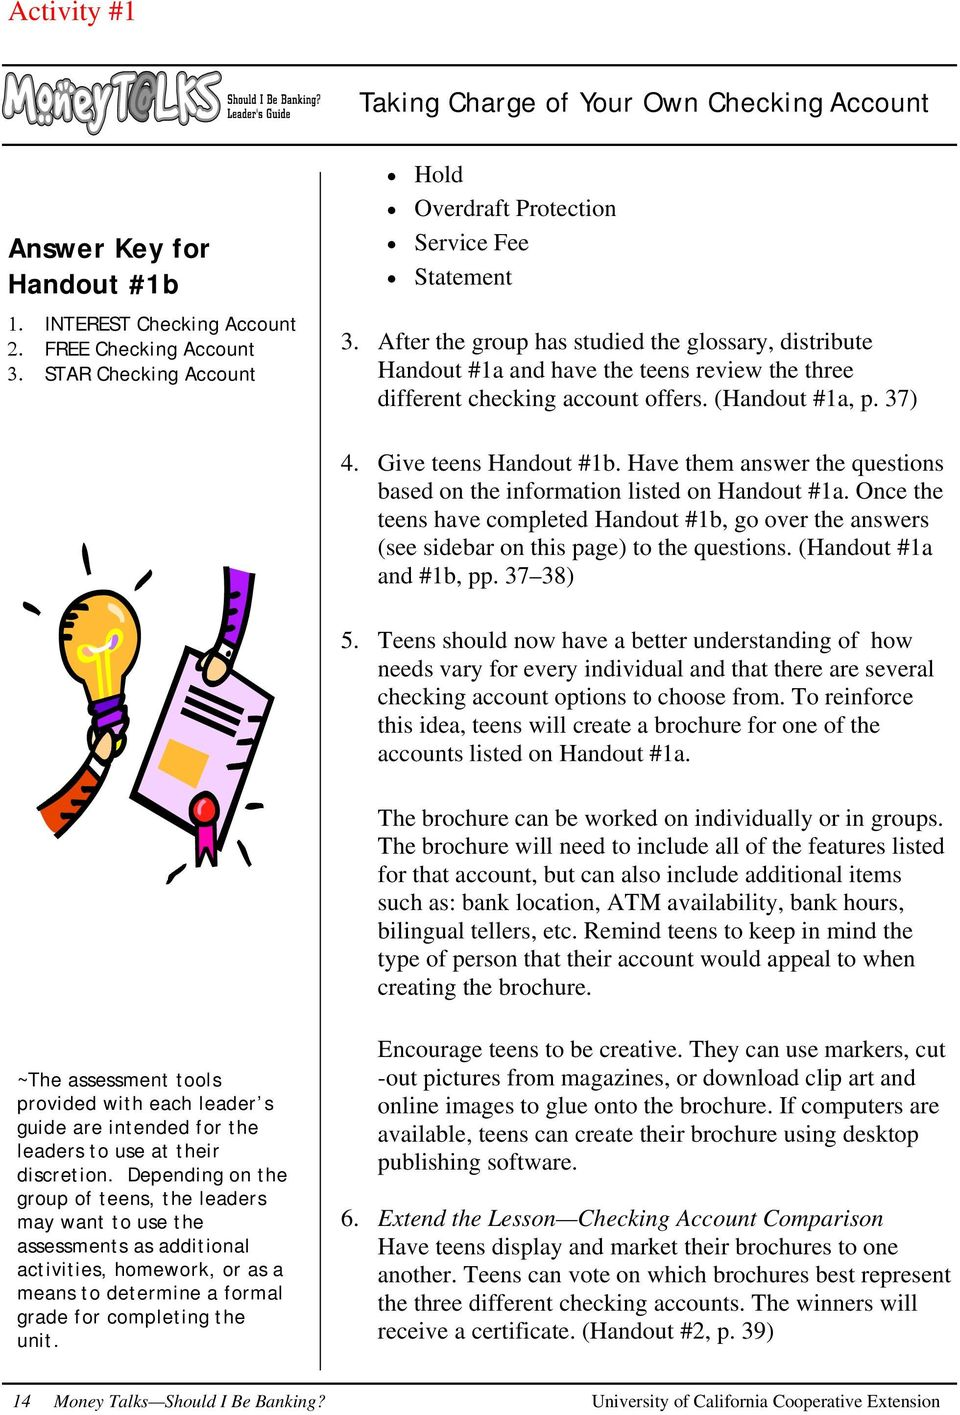 Have them answer the questions based on the information listed on Handout #1a. Once the teens have completed Handout #1b, go over the answers (see sidebar on this page) to the questions.